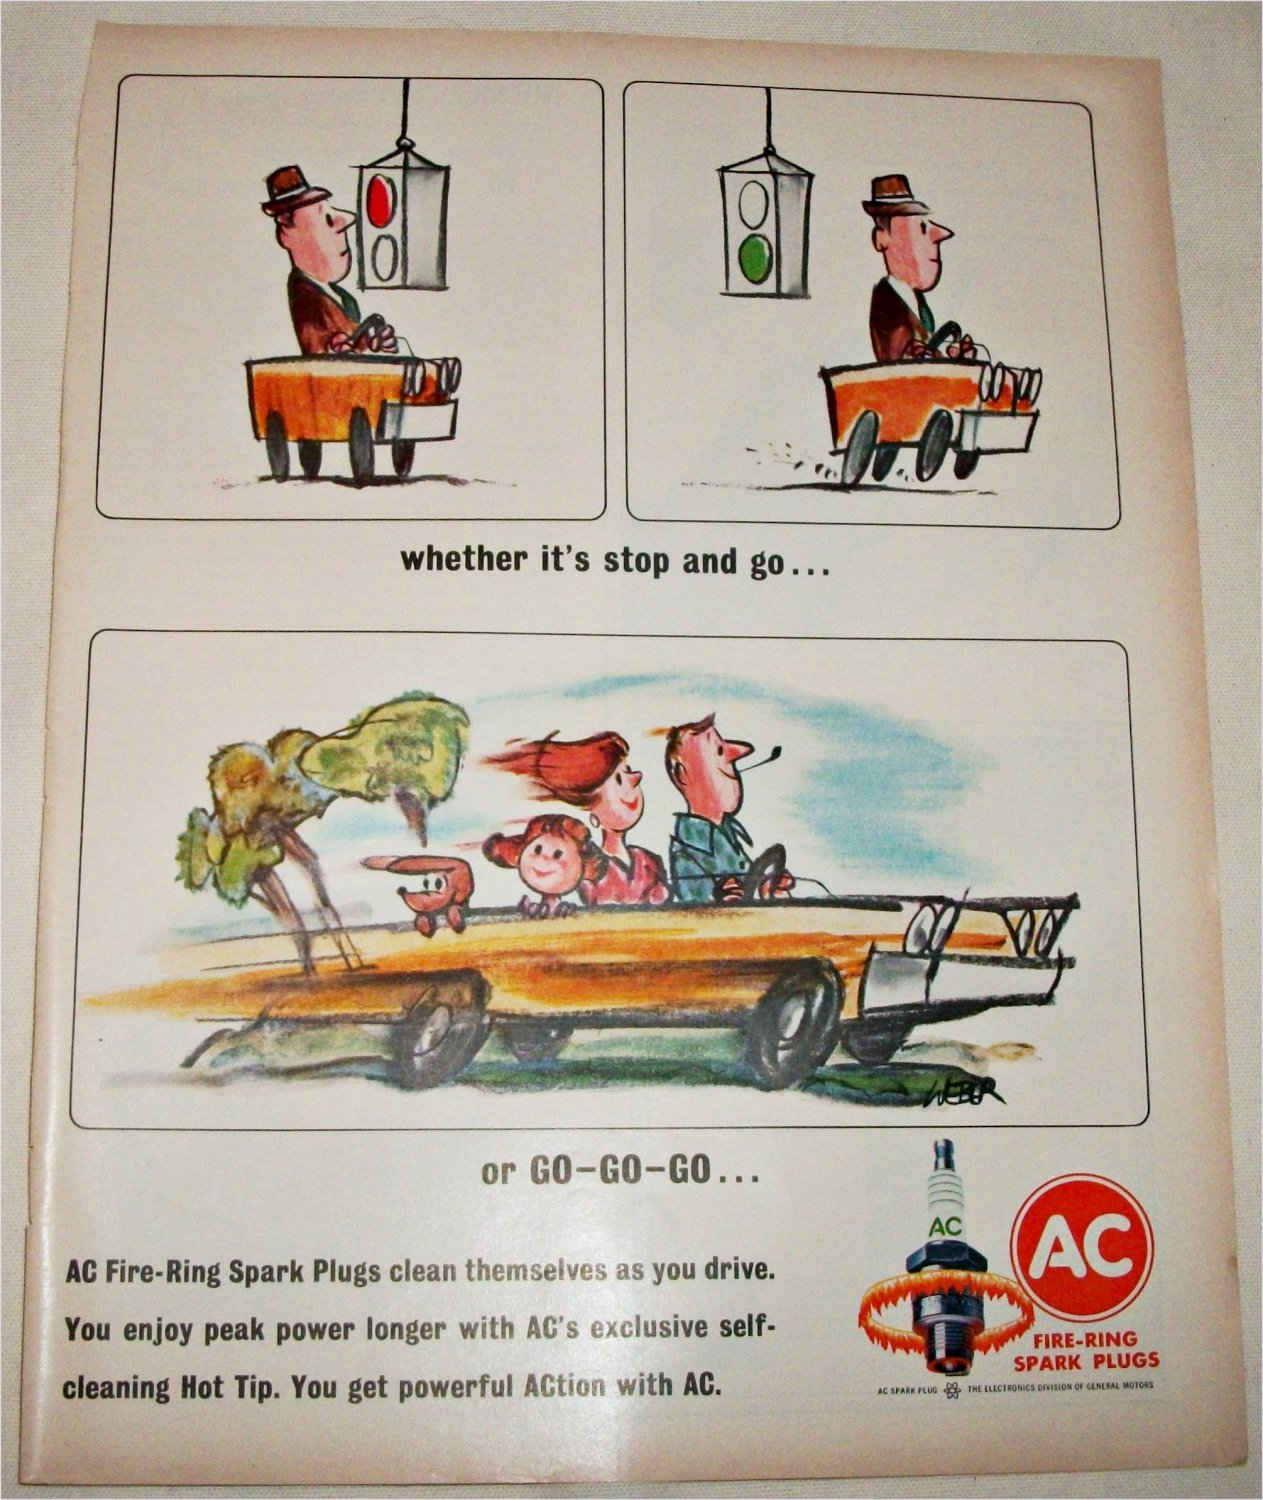 1964 AC Fire-Ring Spark Plugs ad